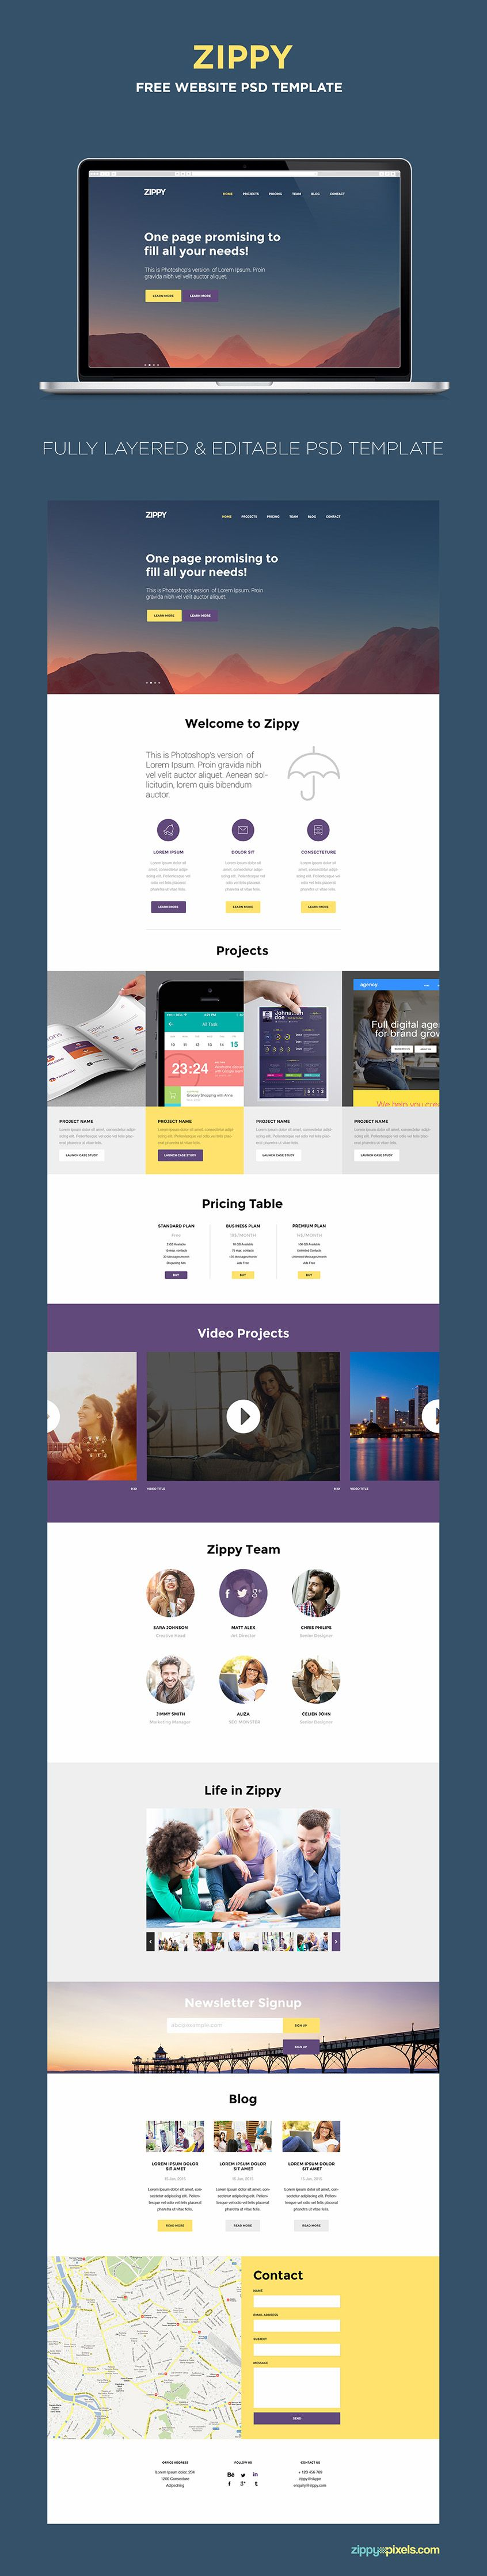 Free One Page Website Template PSD Pinterest Psd Templates - Create web page template